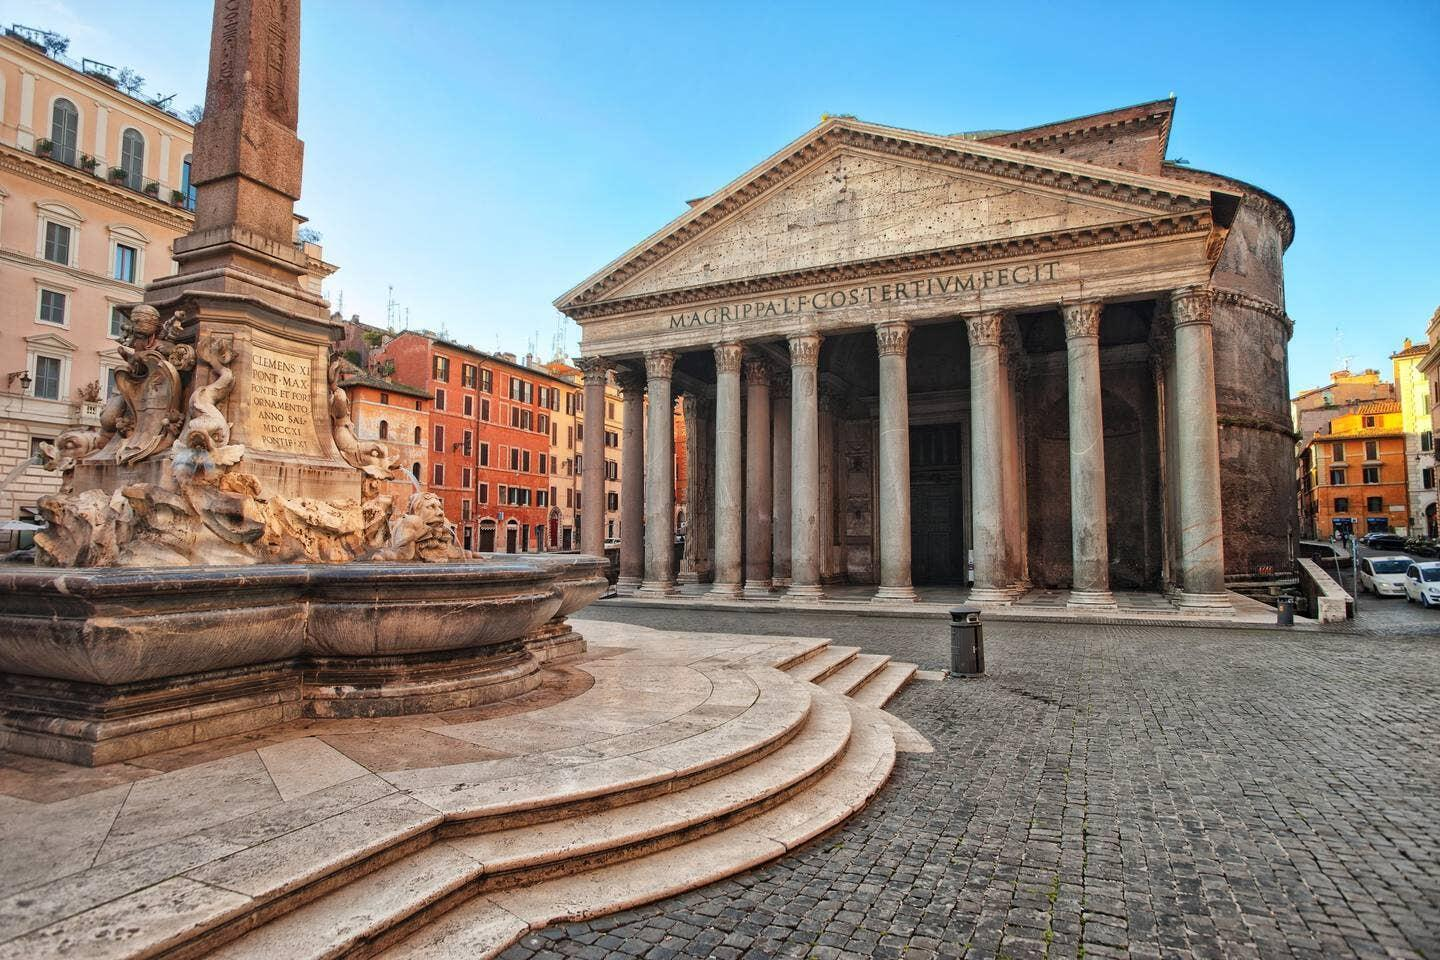 Trevi Holiday | Dream Stay for 2 in Heart of Rome! Slide-5